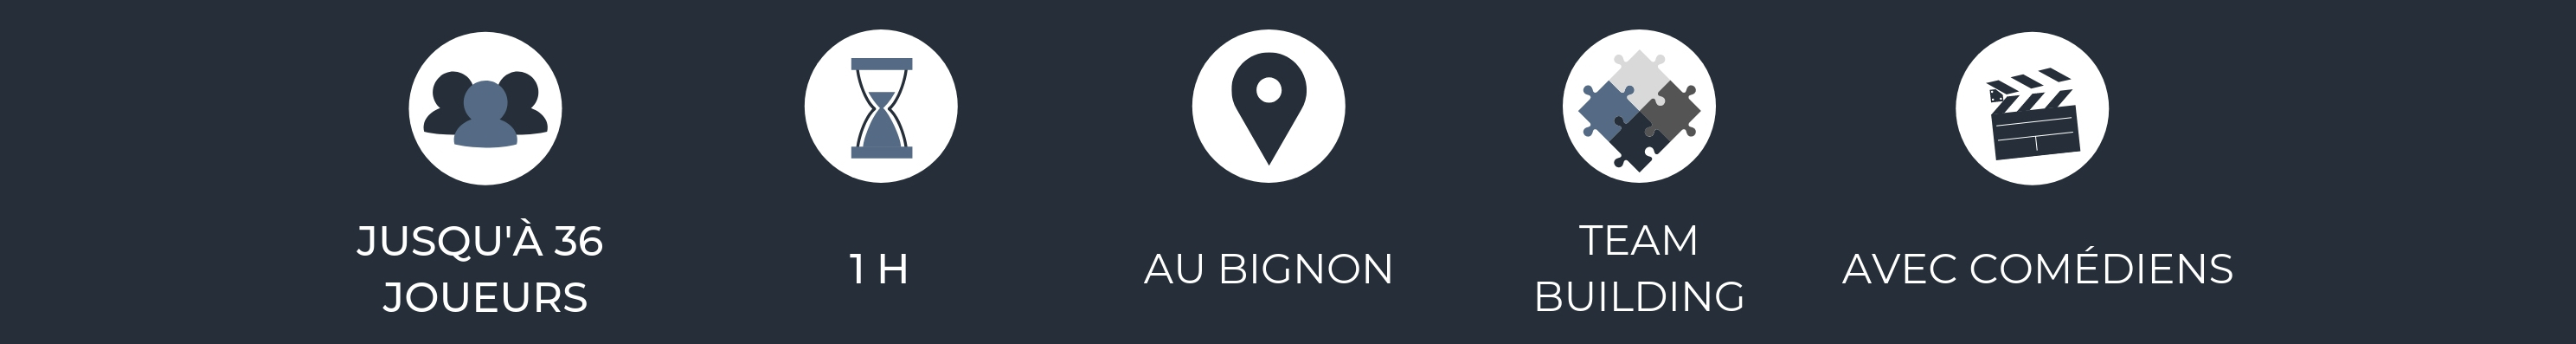 terreur au Bignon, escape game d'horreur